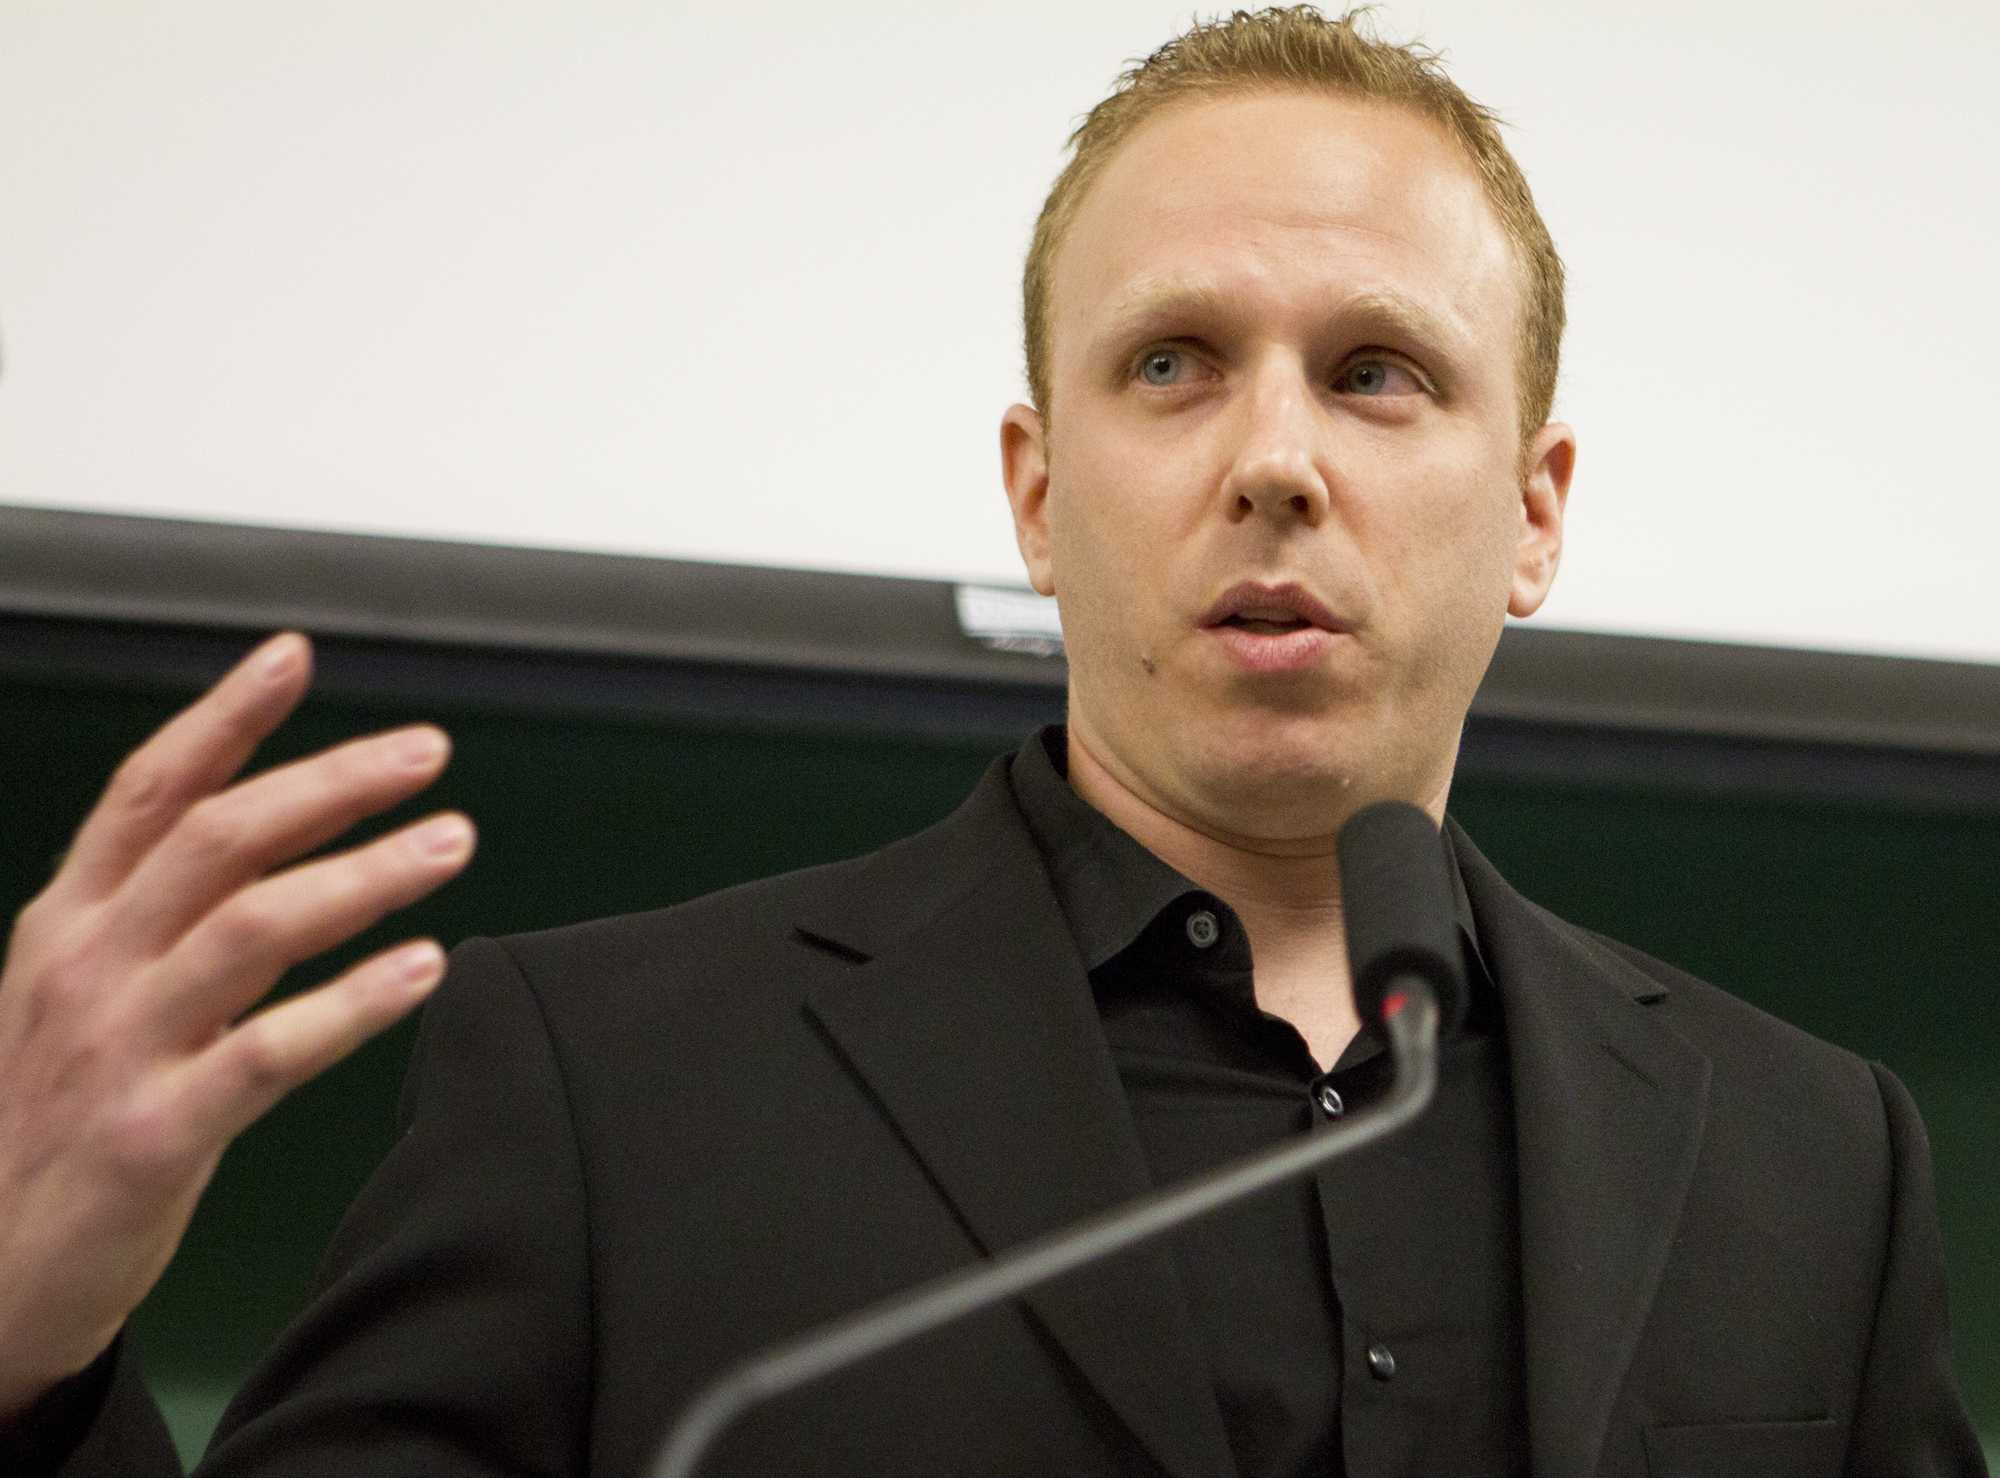 Journalist and author Max Blumenthal speaks Monday night in Swift Hall on